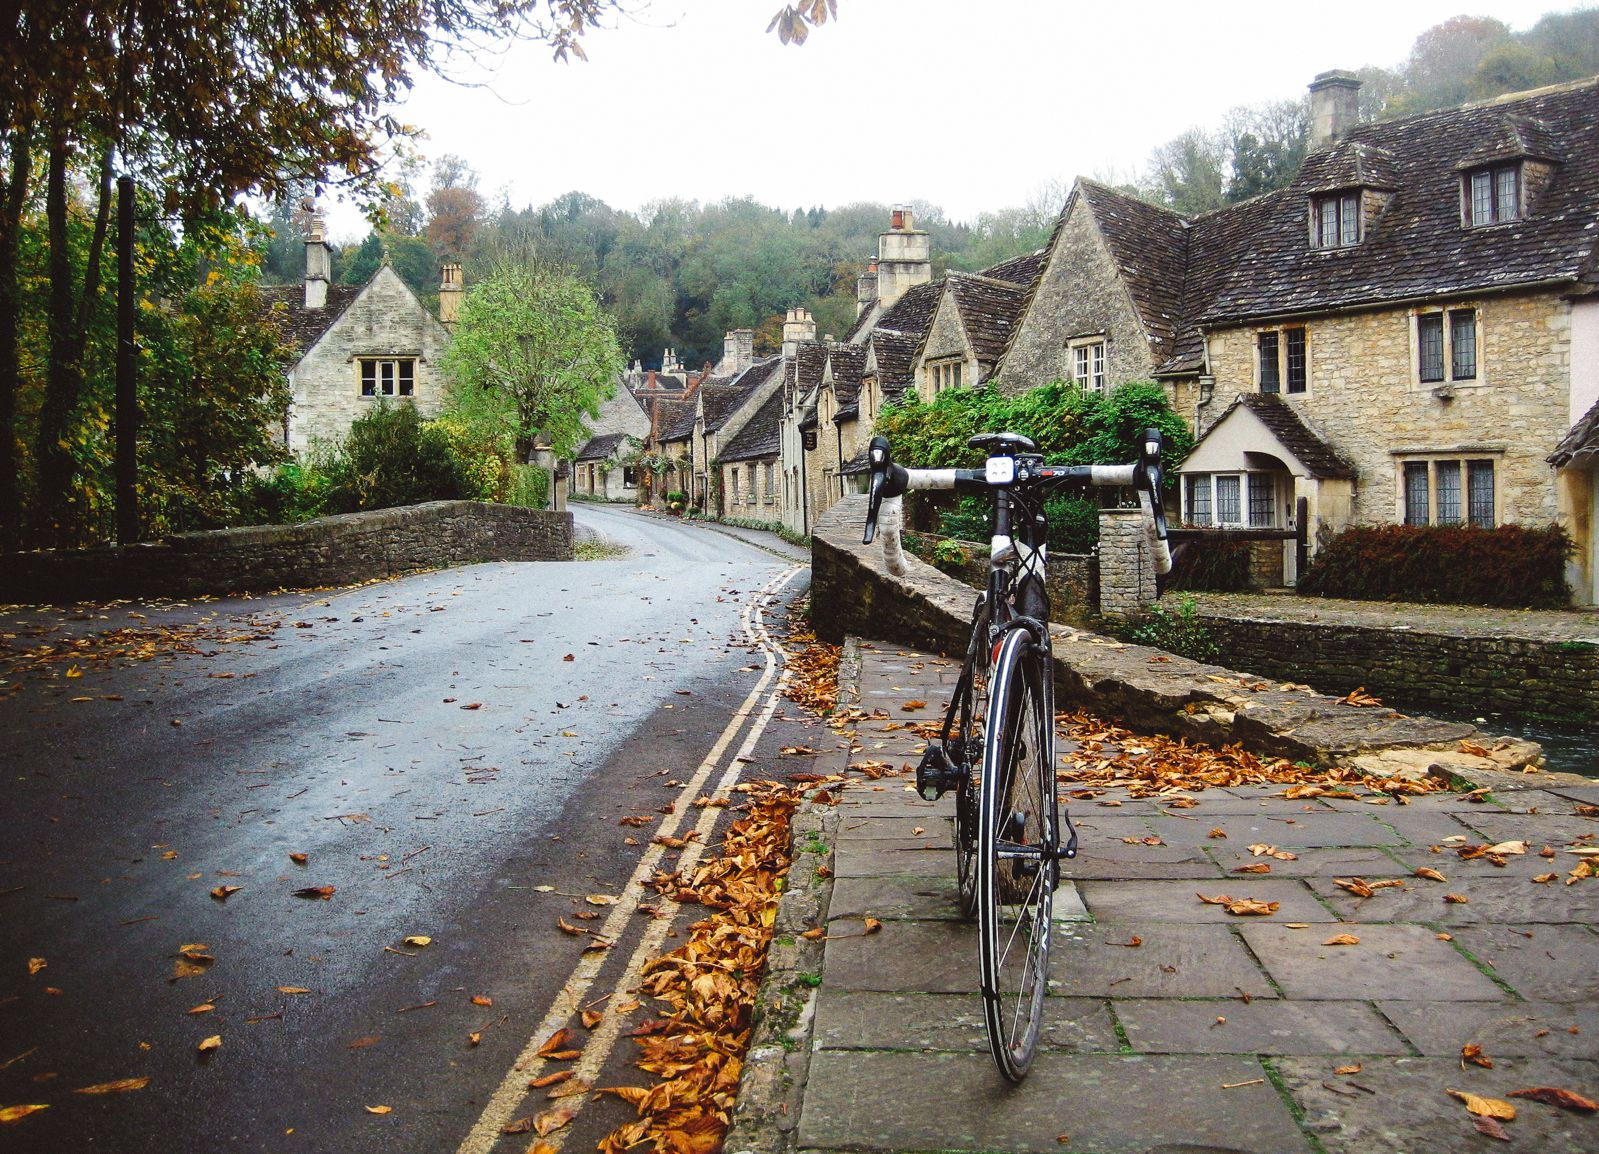 These Photos Are Guaranteed To Make You Want To Visit The Cotswolds in England! (1)